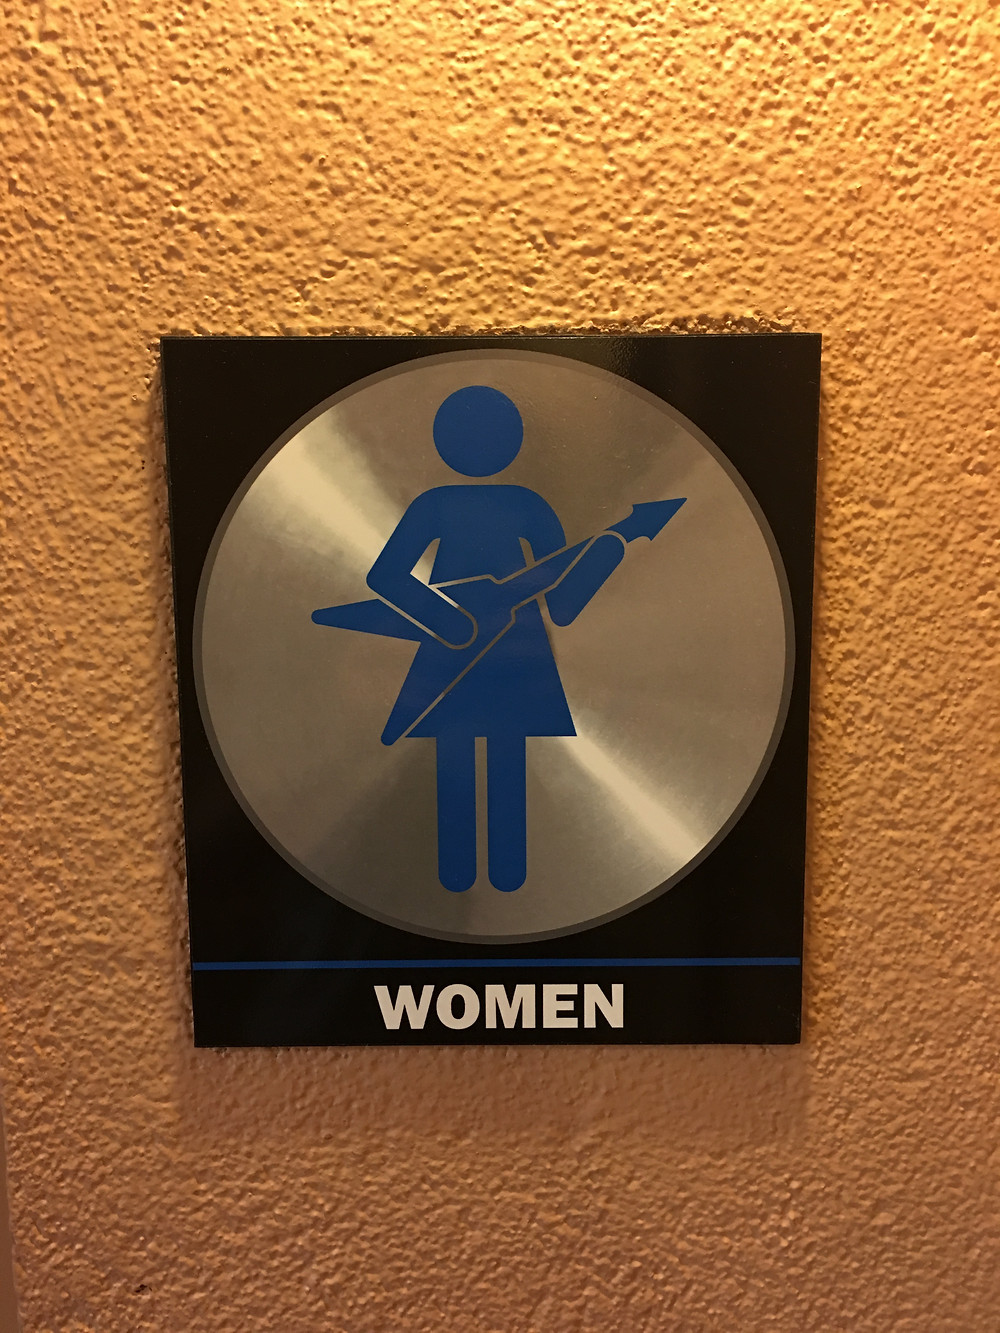 Women's Room Sign at Rock 'n' Roller Coaster Loo